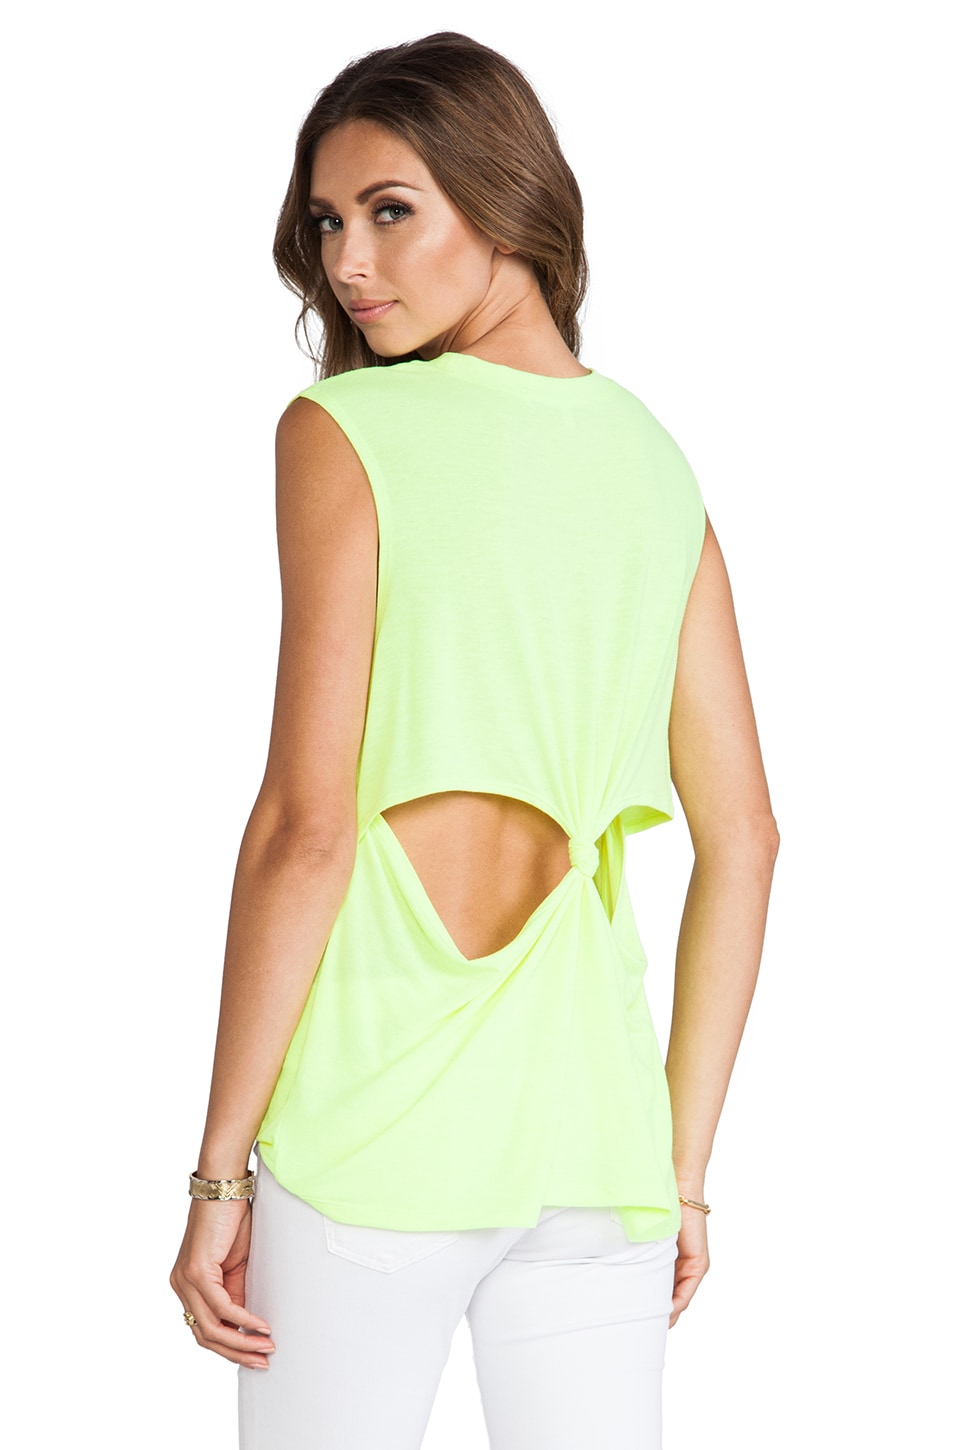 Lovers + Friends She's a Women Tank in Neon Yellow